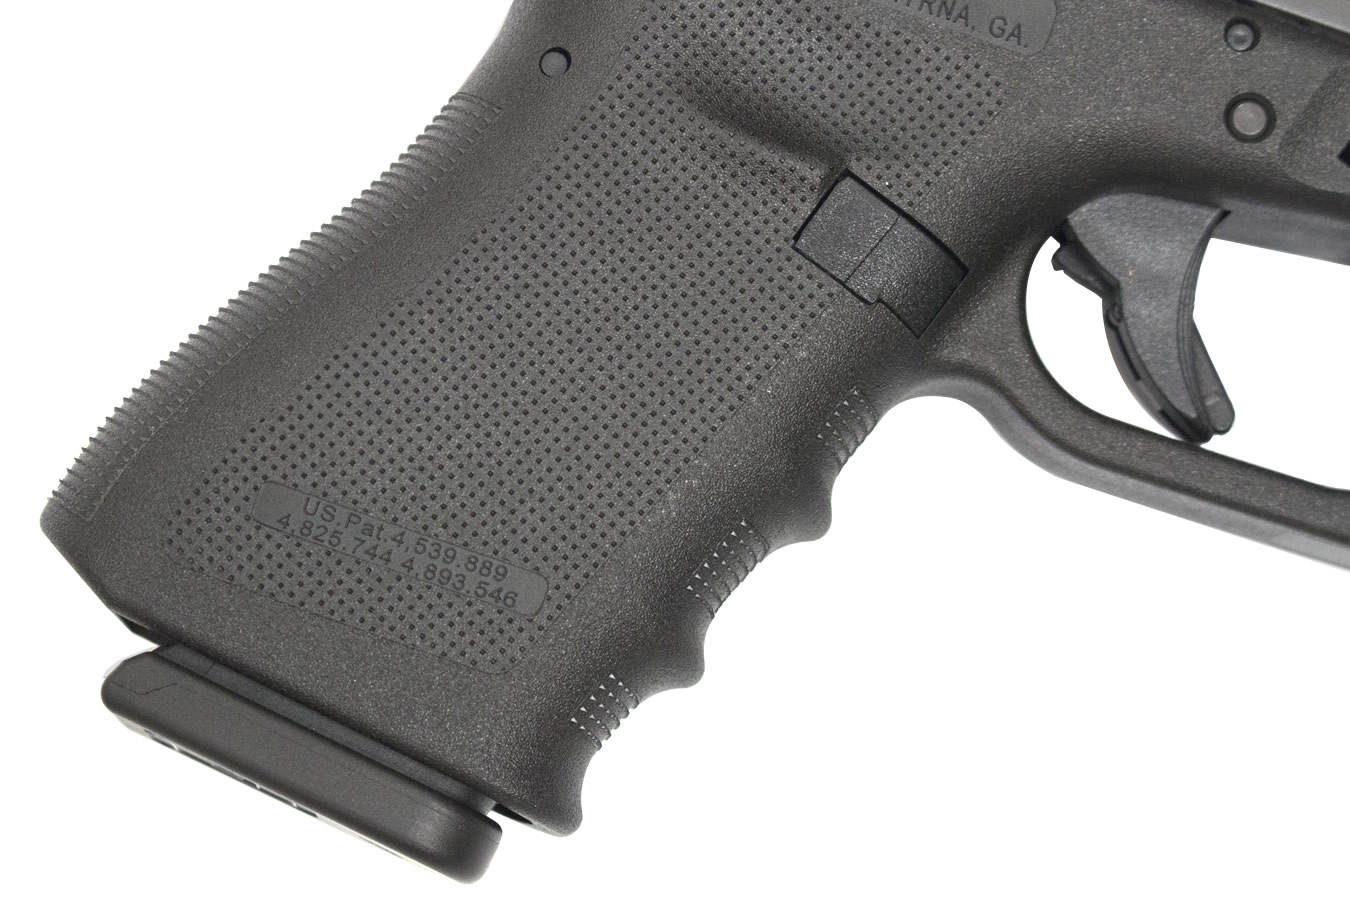 19 Gen3 9mm 15-Round Vickers Tactical Black Pistol with RTF2 Frame